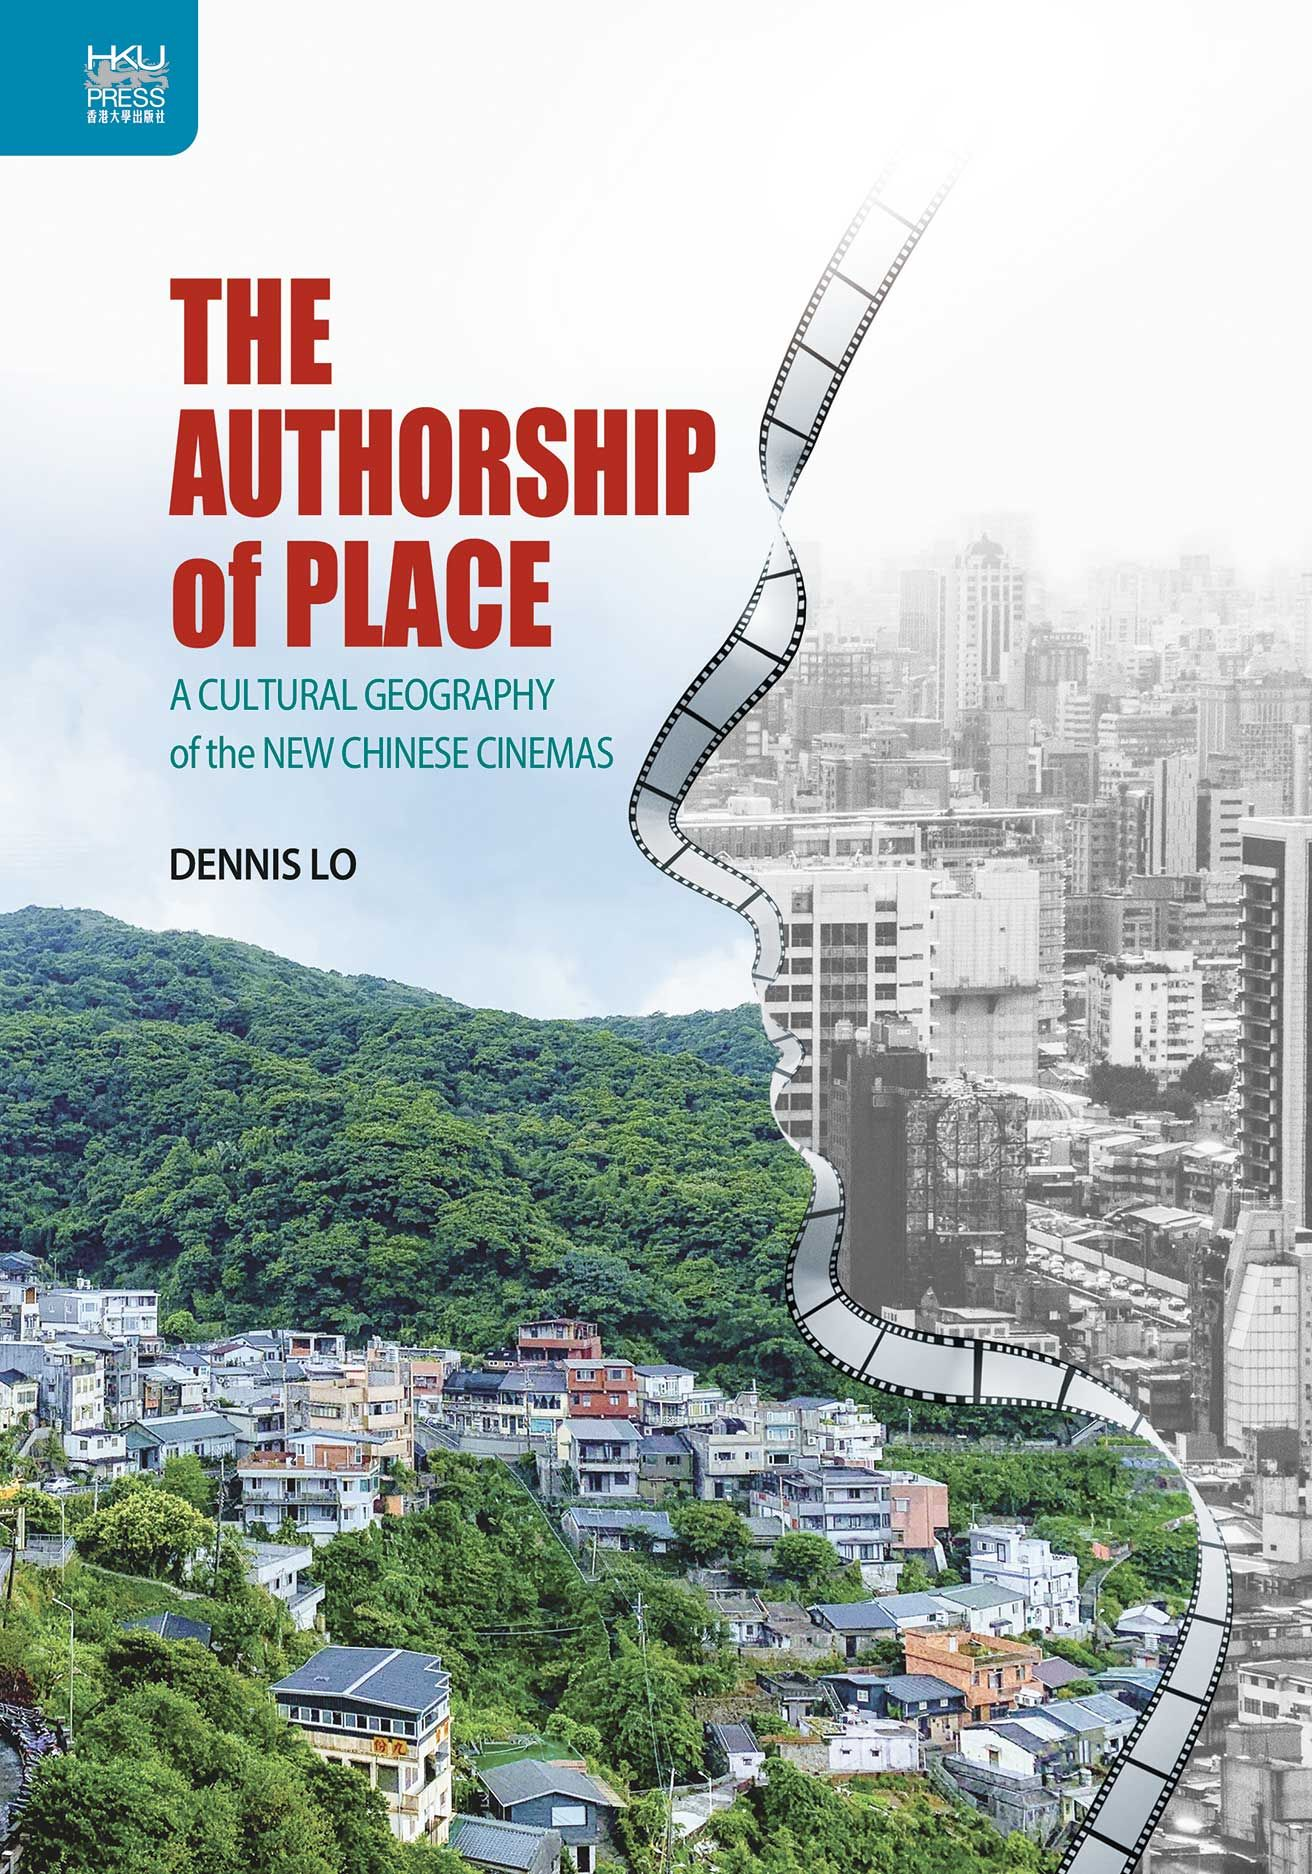 The Authorship of Place: A Cultural Geography of the New Chinese Cinemas